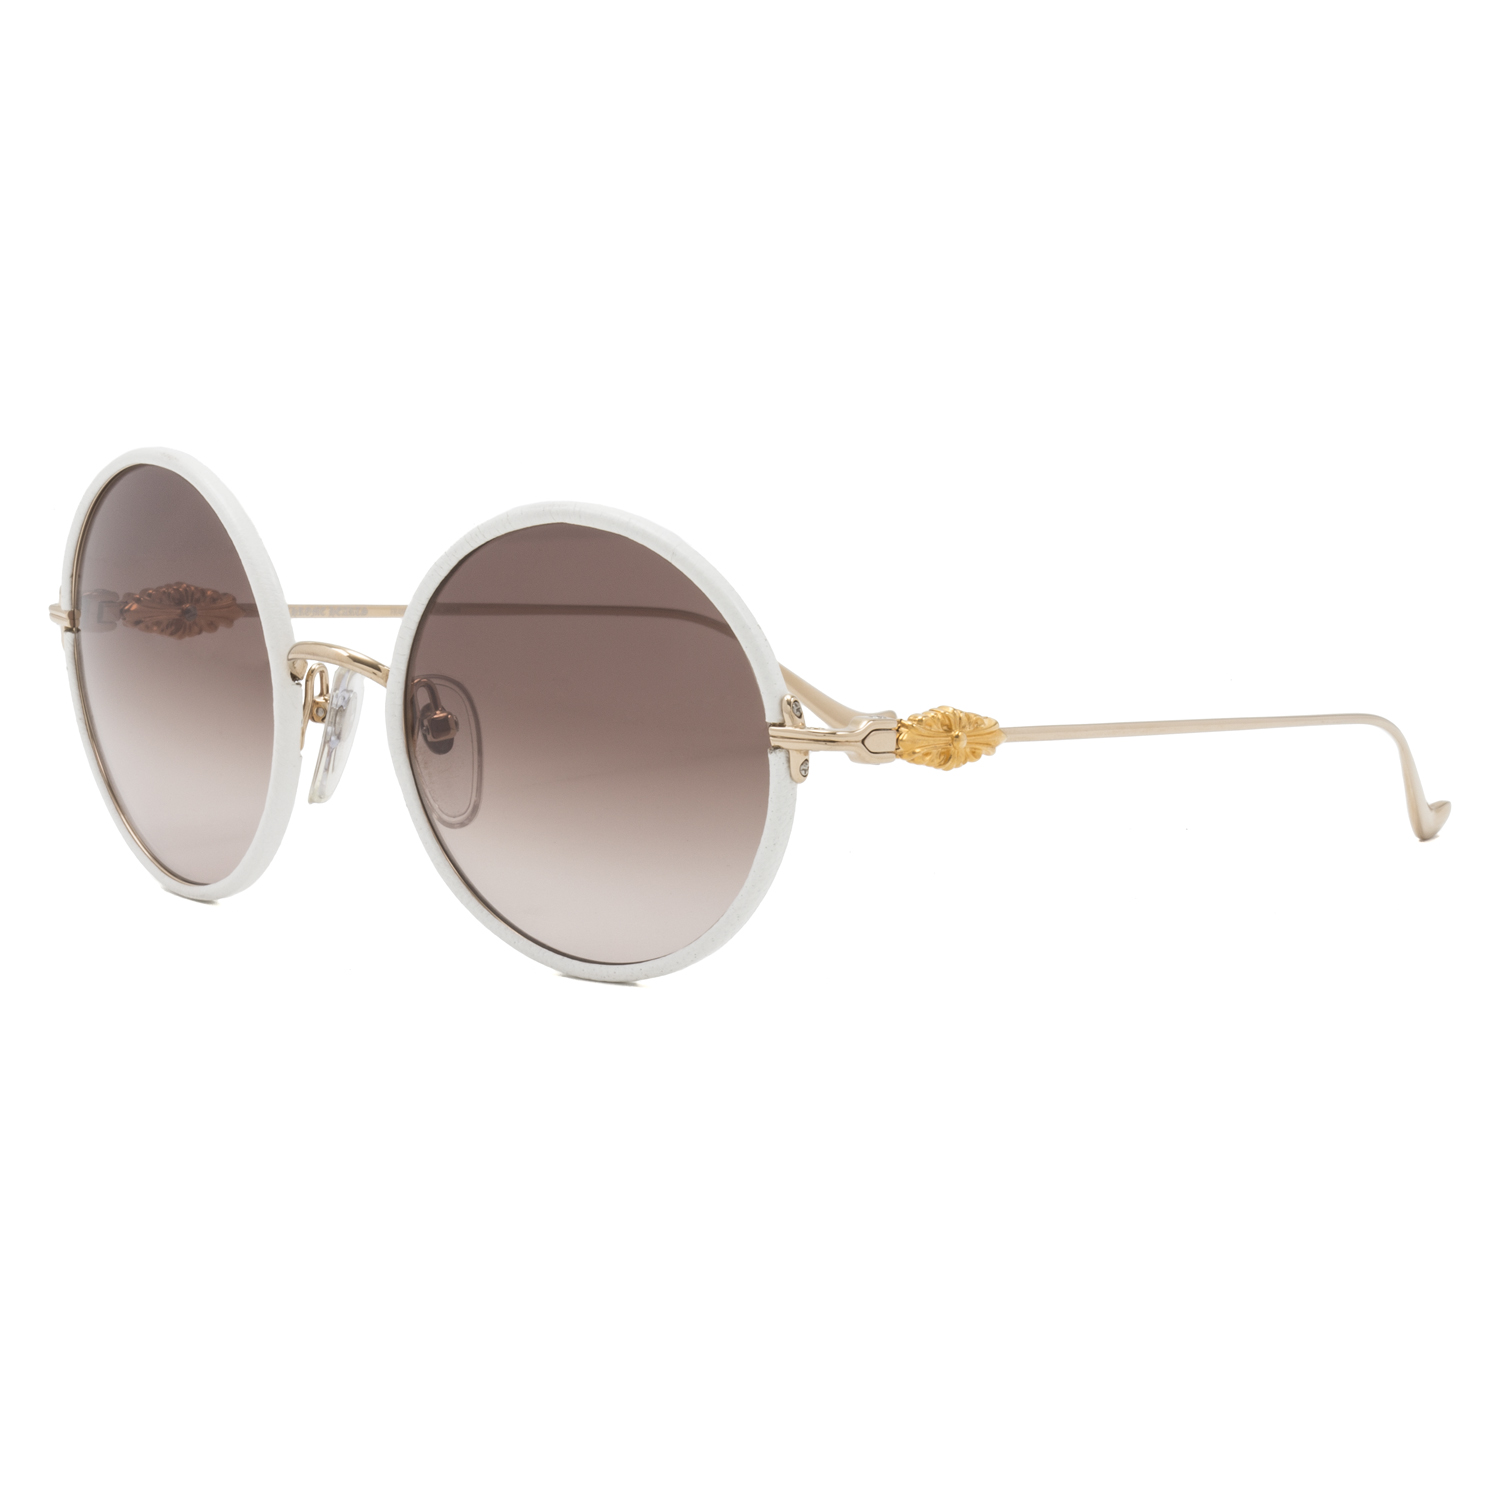 3a92982eac50 Chrome Hearts Ovaryeasy Sunglasses Gold White Leather Frame Brown Gradient  Lens